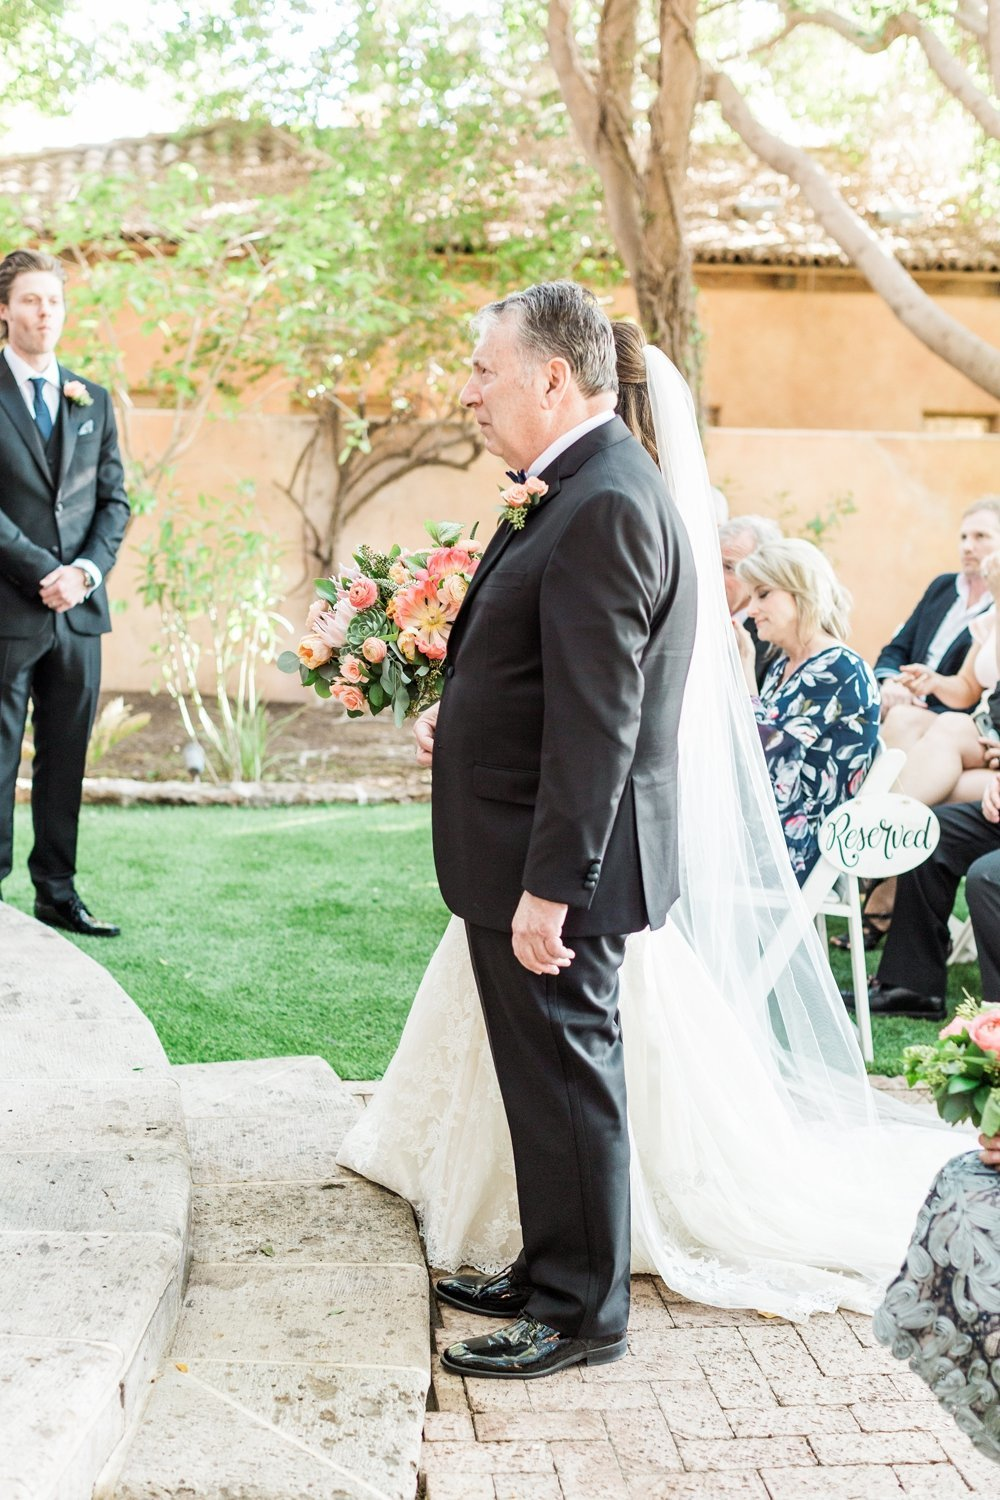 royal-palms-wedding-photographer-arizona-rachael-koscica-photography_0084